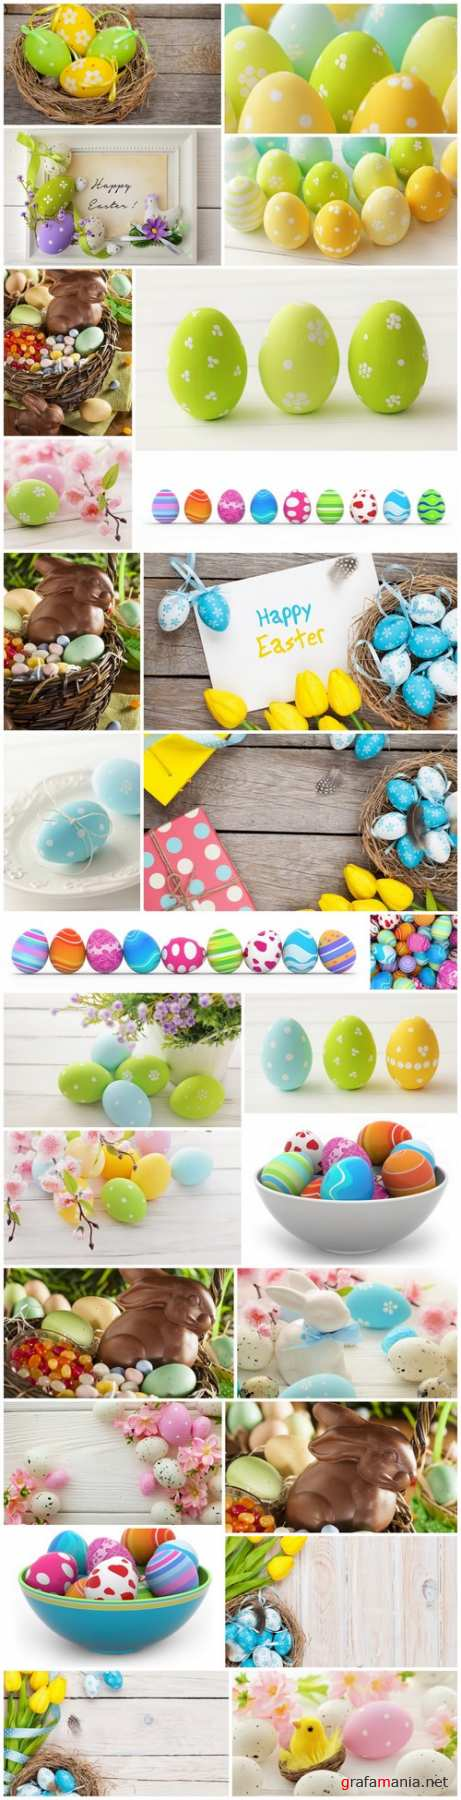 Easter Eggs and Happy Easter 2 - Set of 26xUHQ JPEG Professional Stock Images